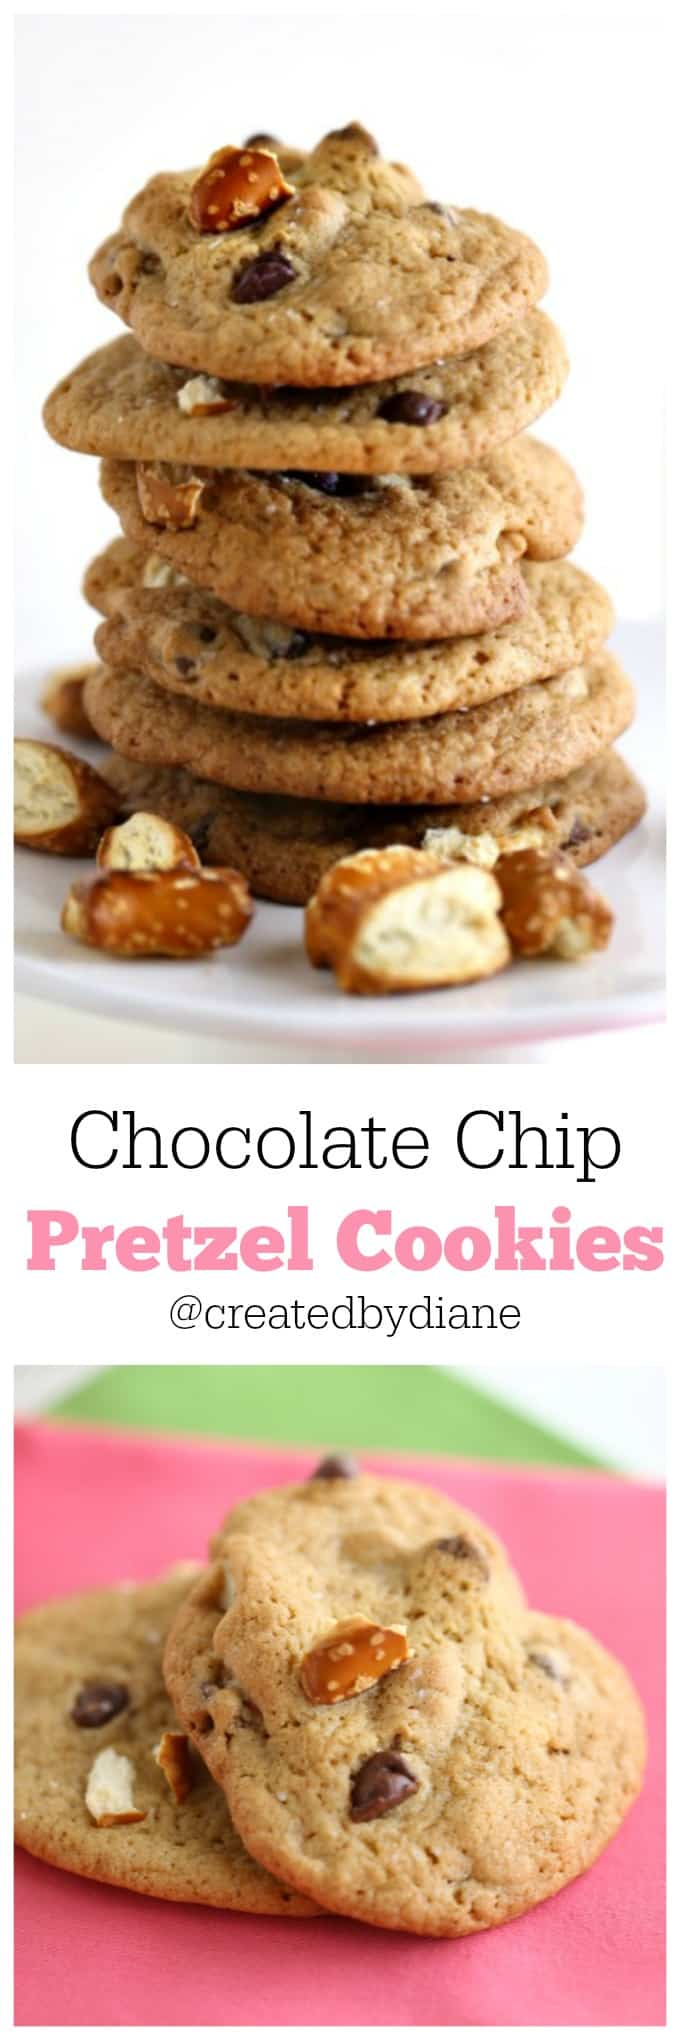 Chocolate Chip Pretzel Cookies from @createdbydiane